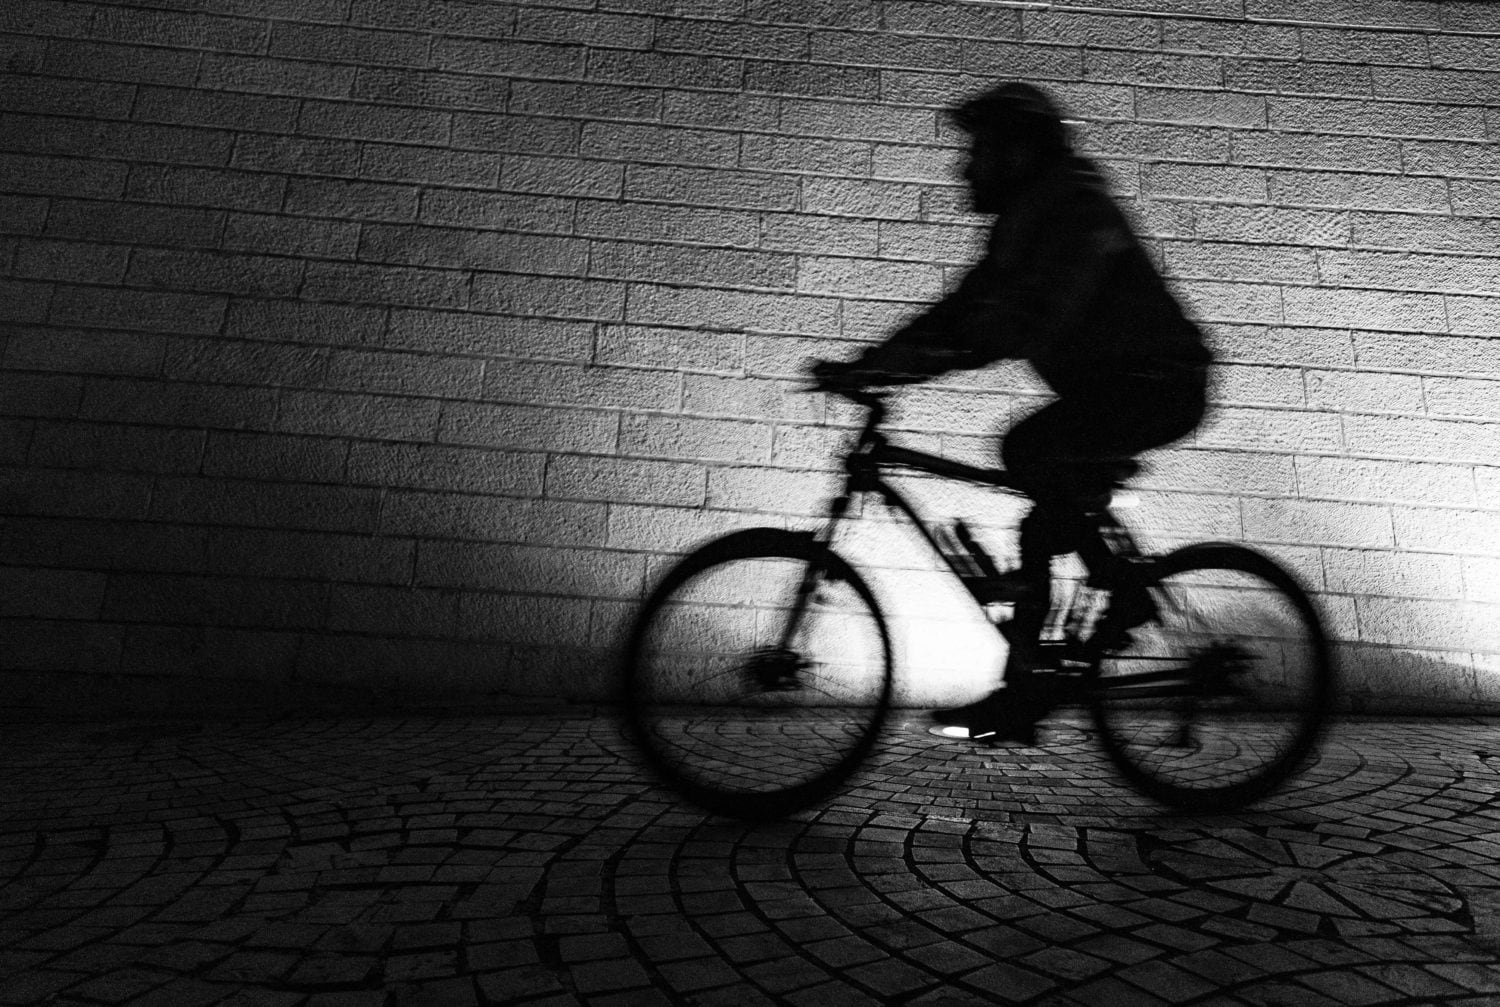 Cycling while black: Man dies in custody in Vegas after biking without lights